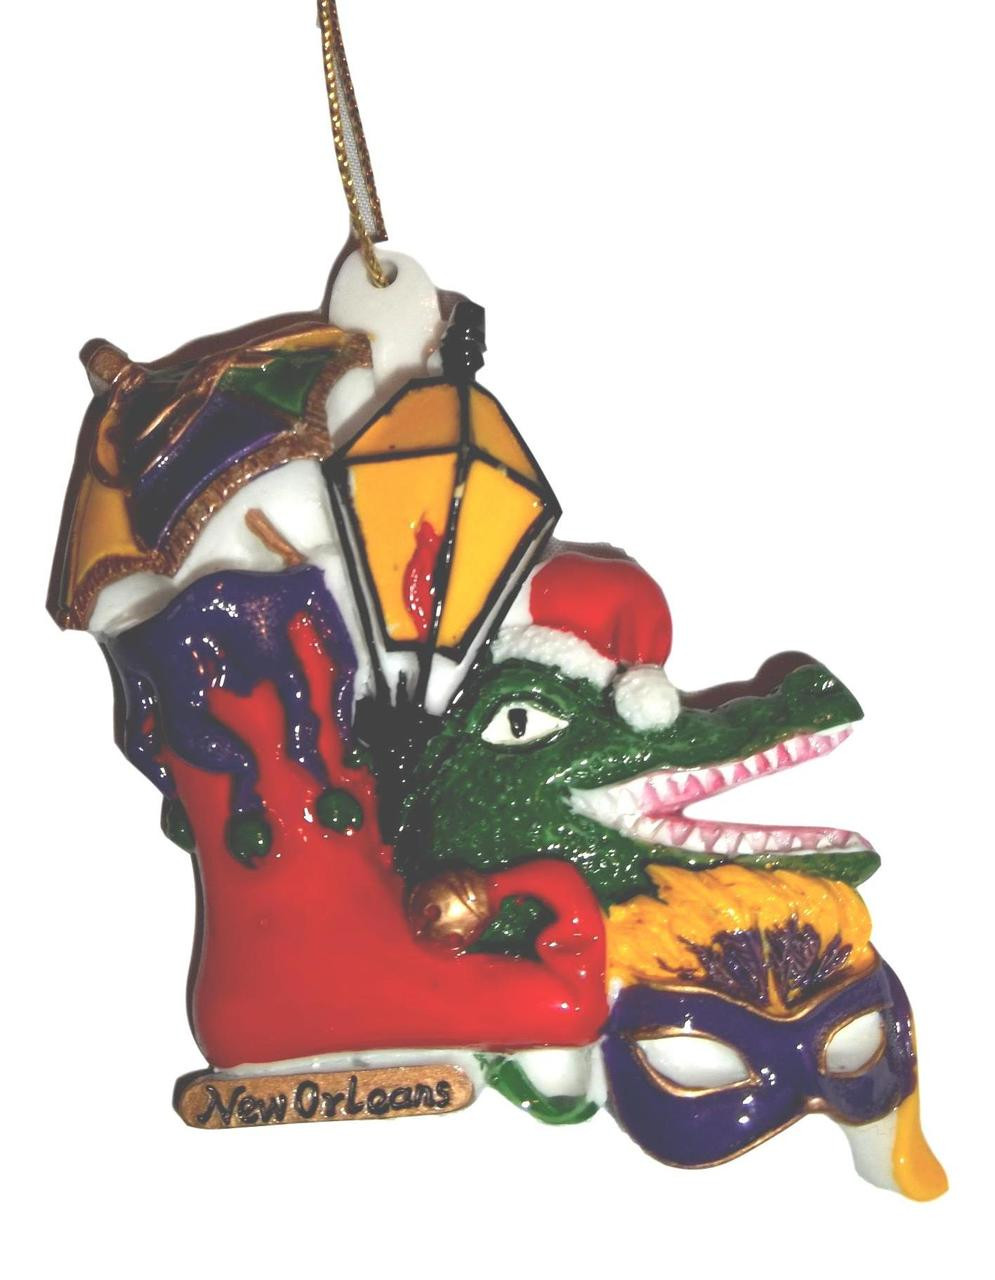 New Orleans Christmas Ornaments.Stocking Gator Mask Parasol New Orleans Christmas Ornament Party Favors